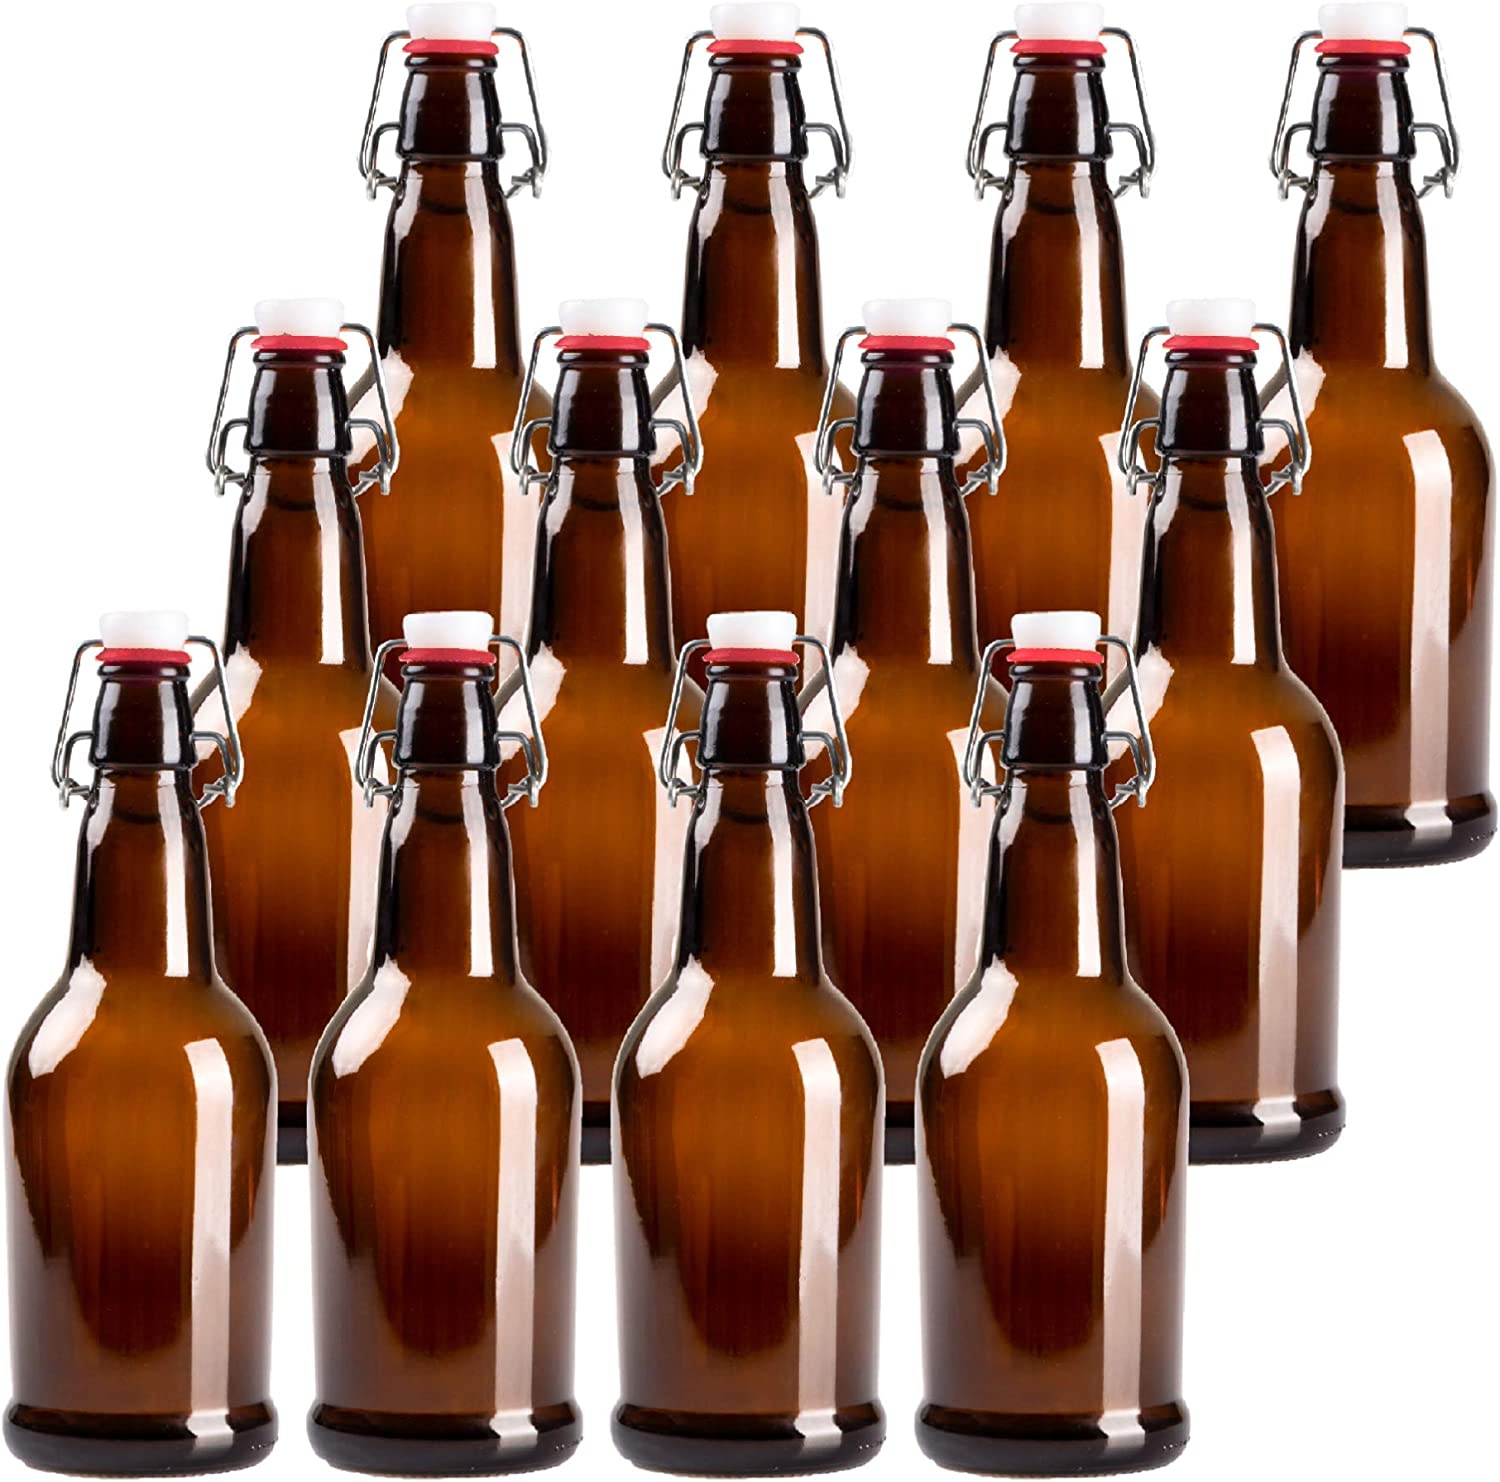 Excellent 16oz Amber Glass Beer Bottles for Home Fl Max 49% OFF Brewing - 12 Pack with